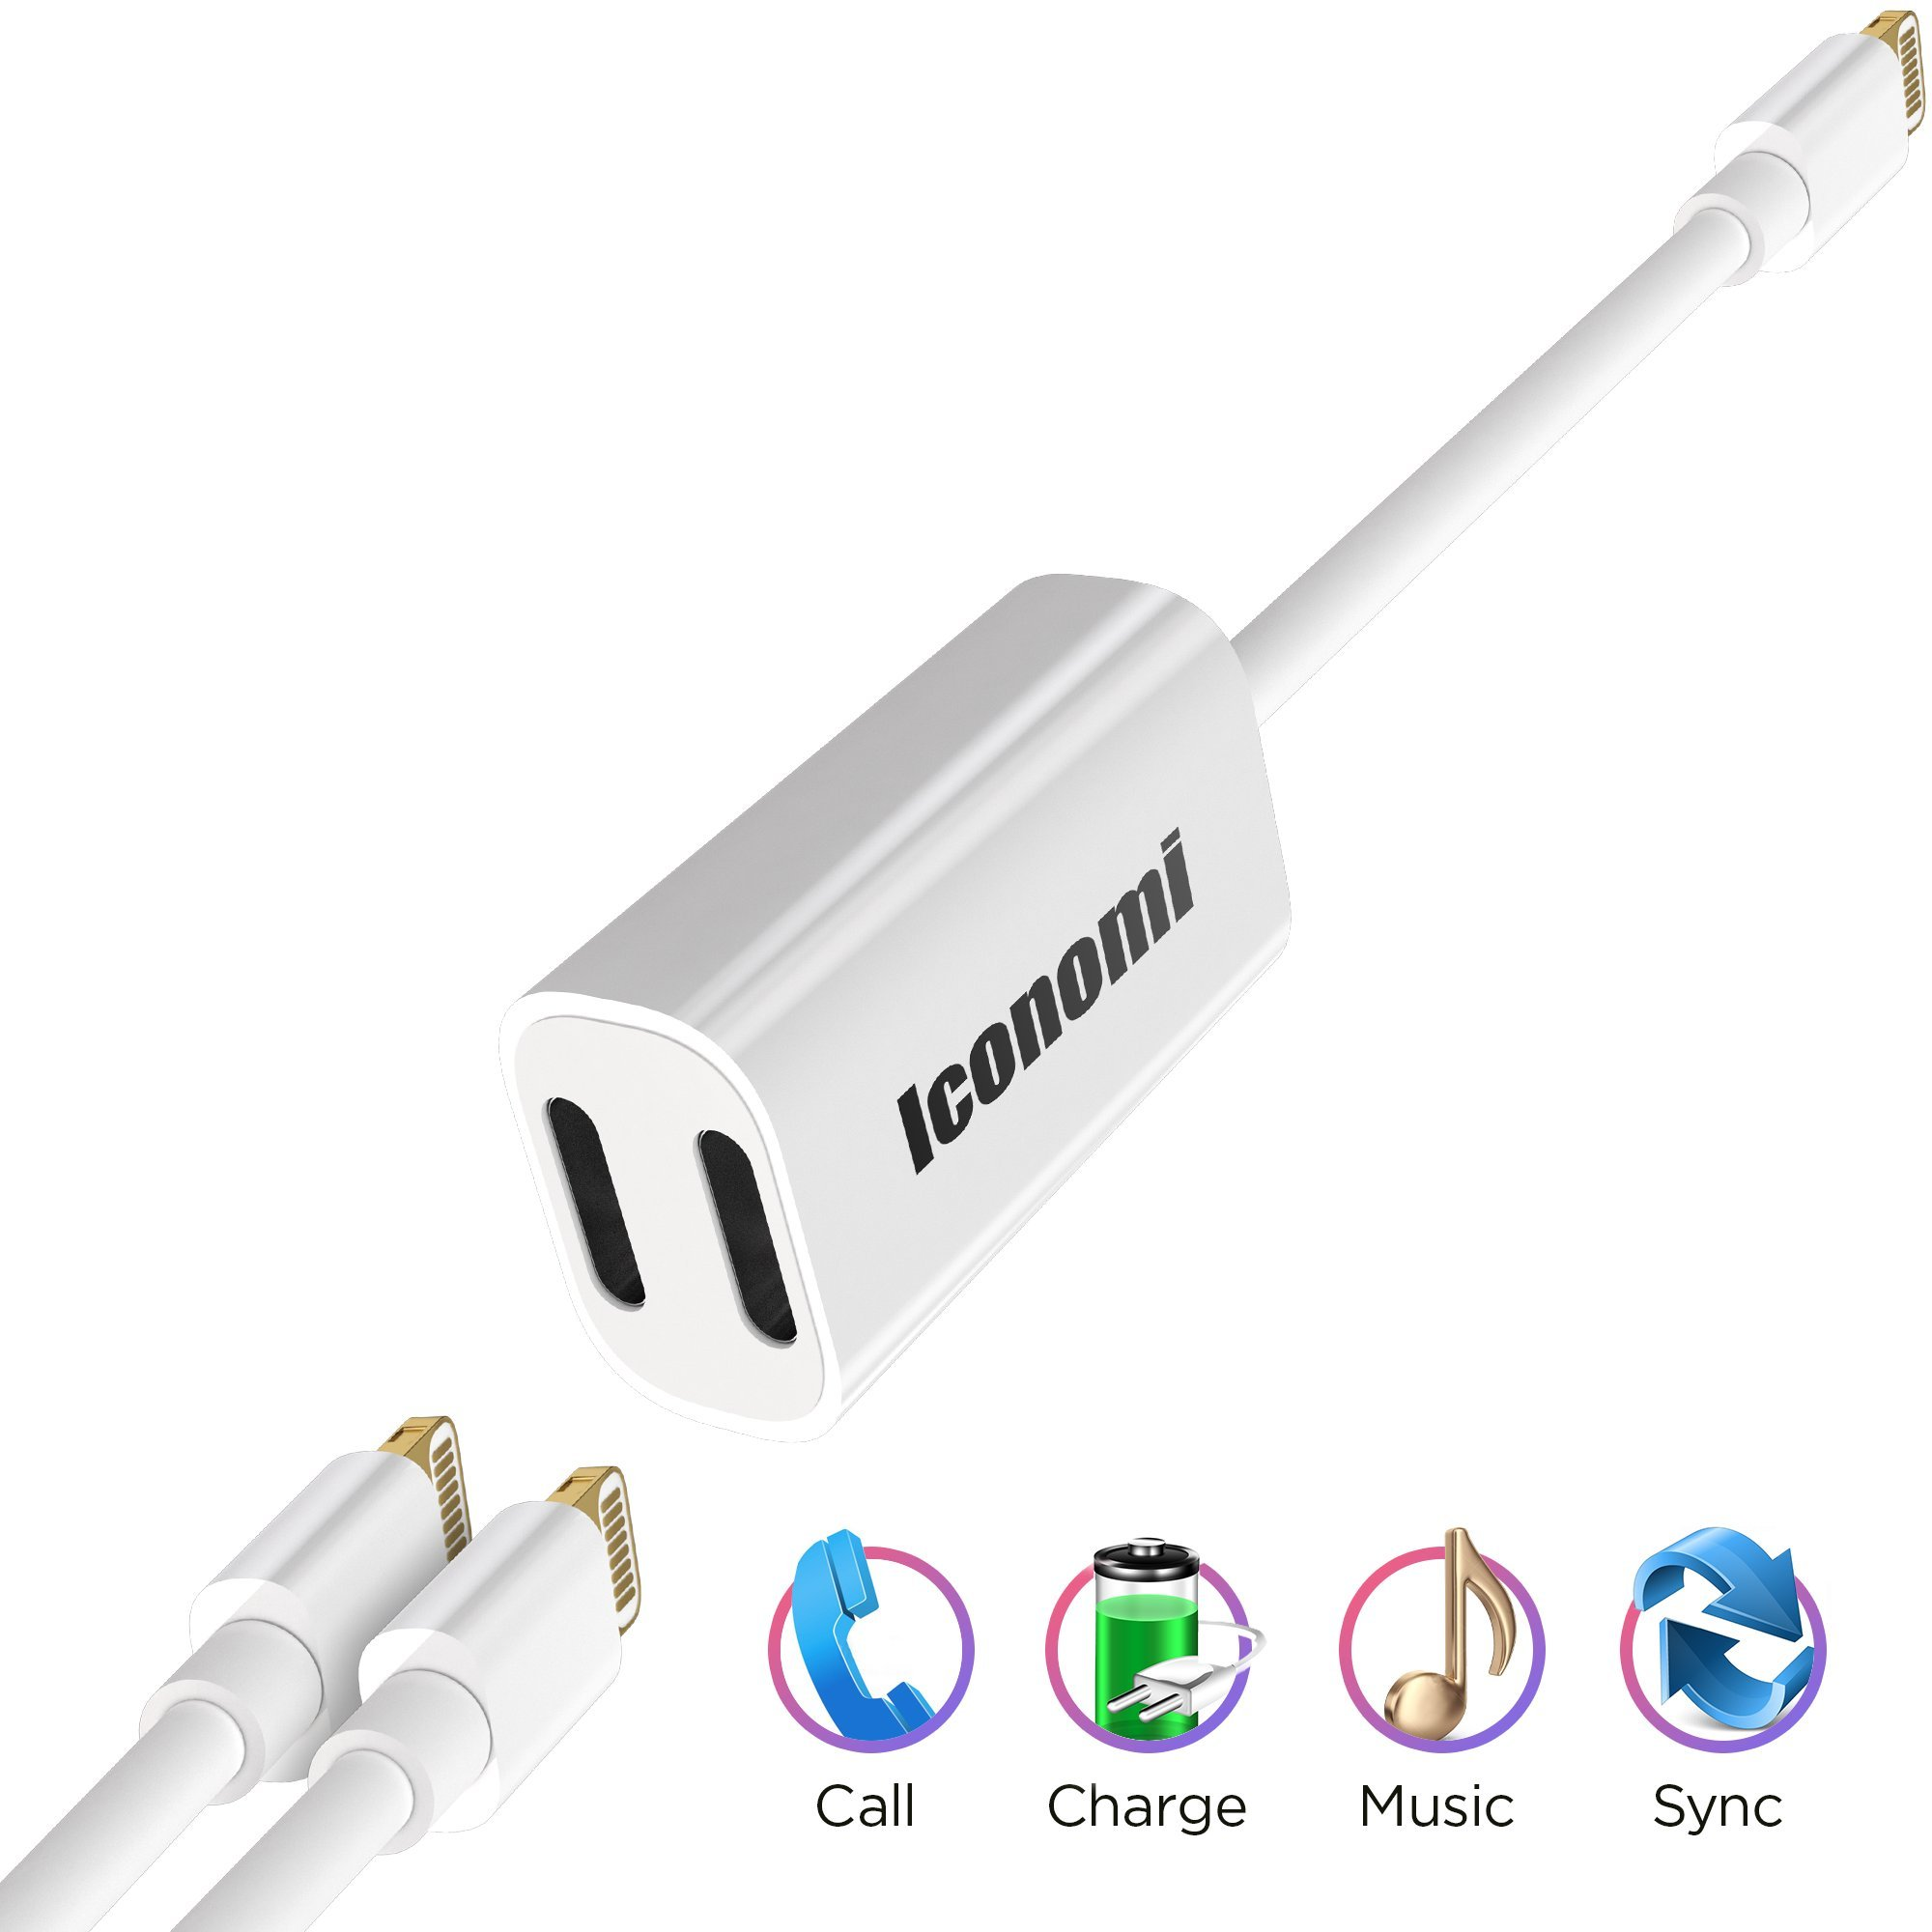 iPhone / 7Plus/ 8 / 8Plus/ X Adapter & Splitter, 2 in 1 Dual Lightning Headphone Jack Audio + Charge Cable Adapter, Compatible for iOS 11 or later, Sync,Music Control,Charge Function at the same time